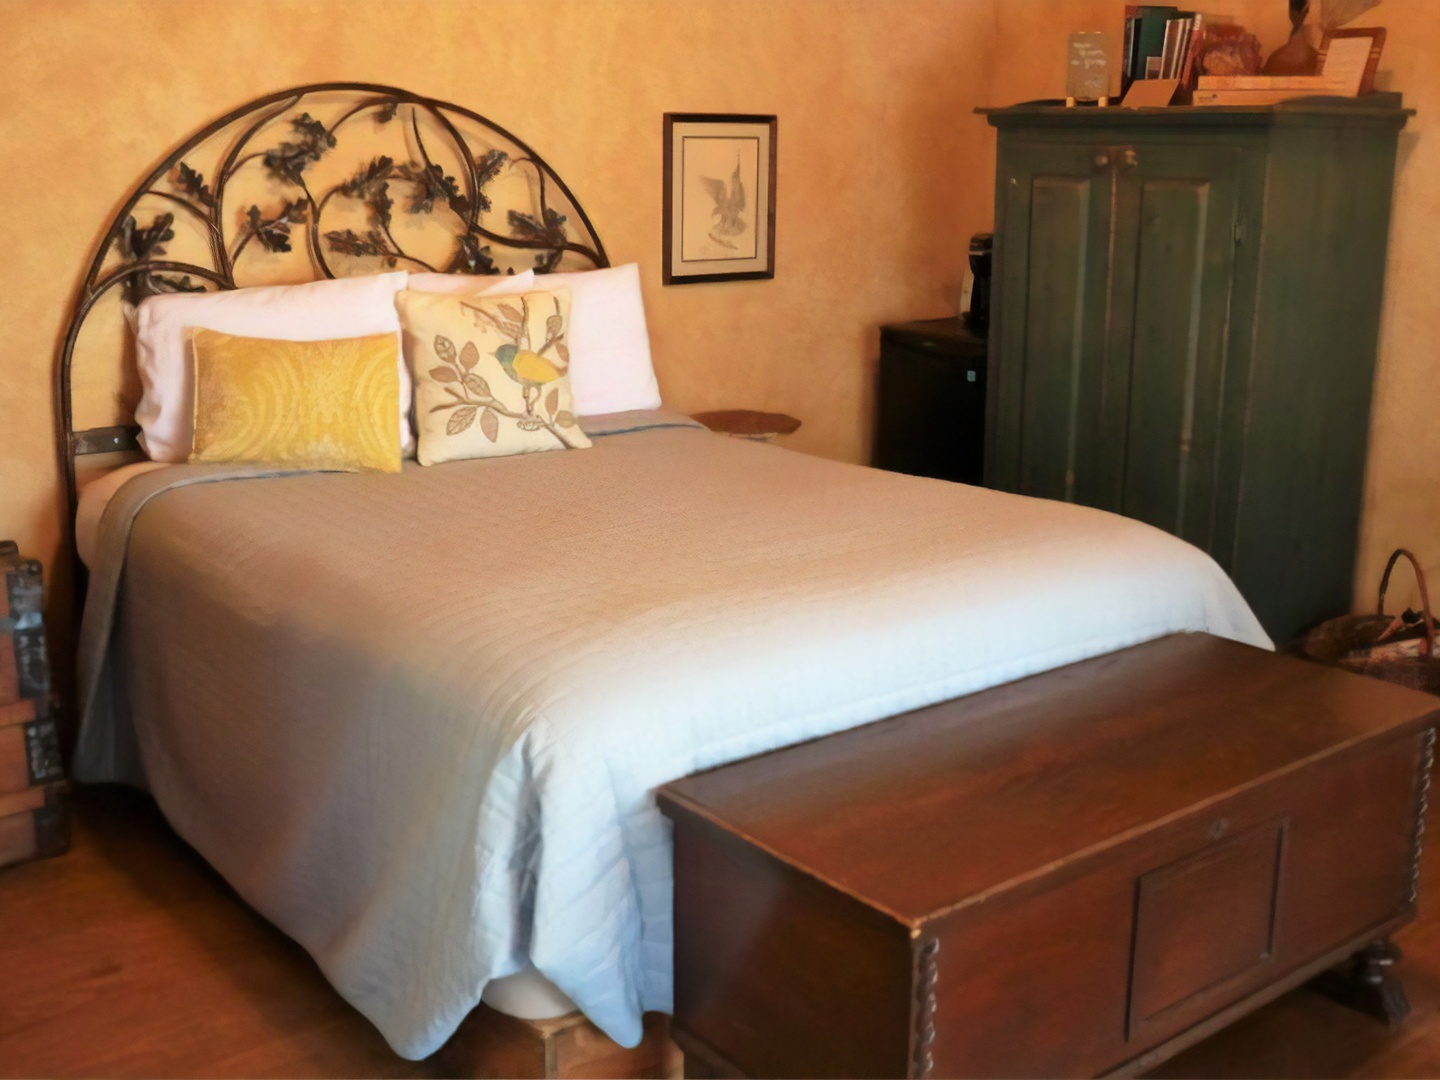 A bedroom with a bed and desk in a room at Star of Texas Bed & Breakfast.